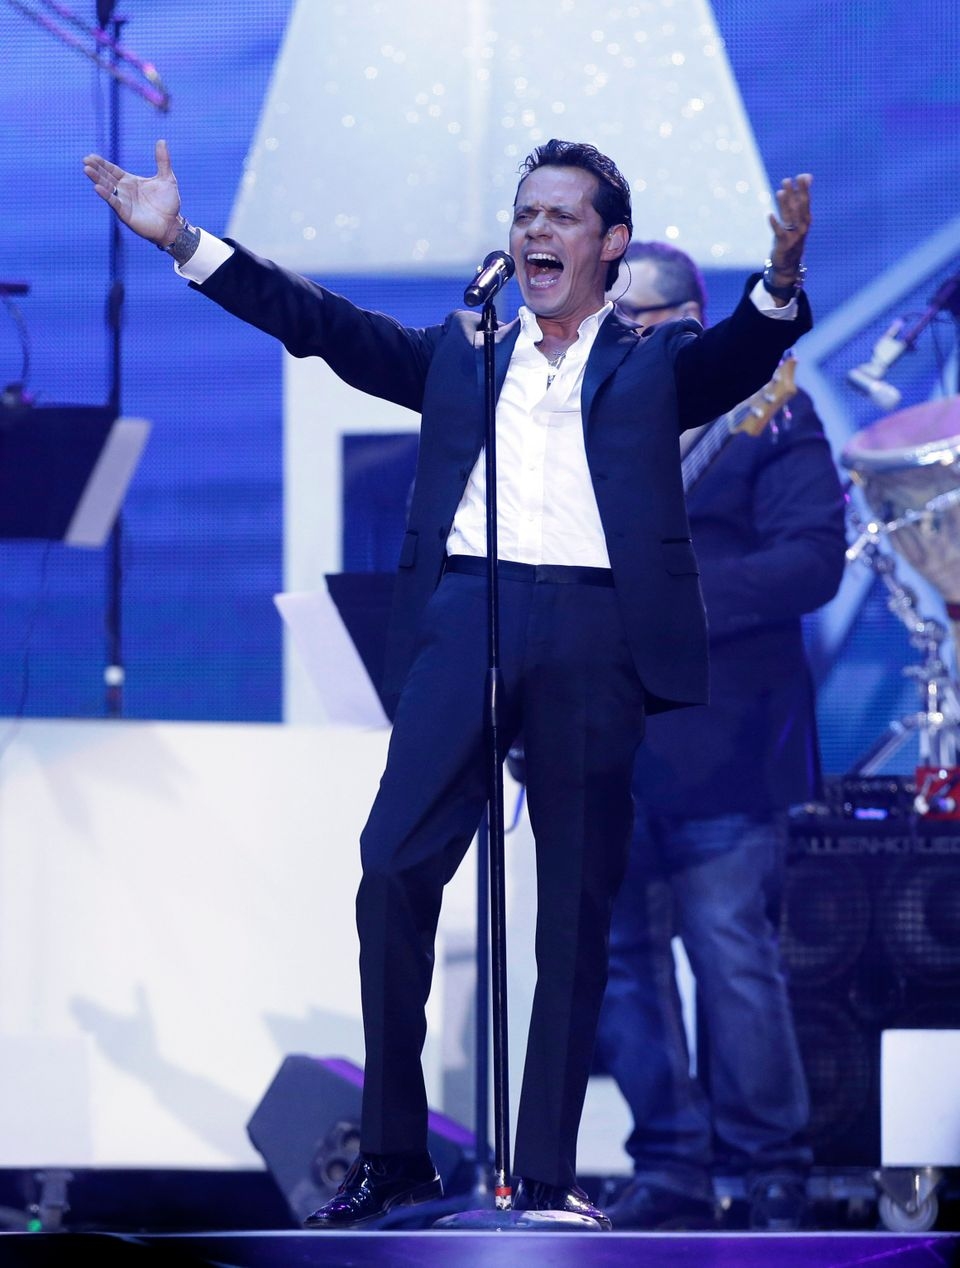 Marc Anthony performs at the Latin Billboard Awards in Coral Gables, Fla., Thursday, April 25, 2013. (AP Photo/Alan Diaz)